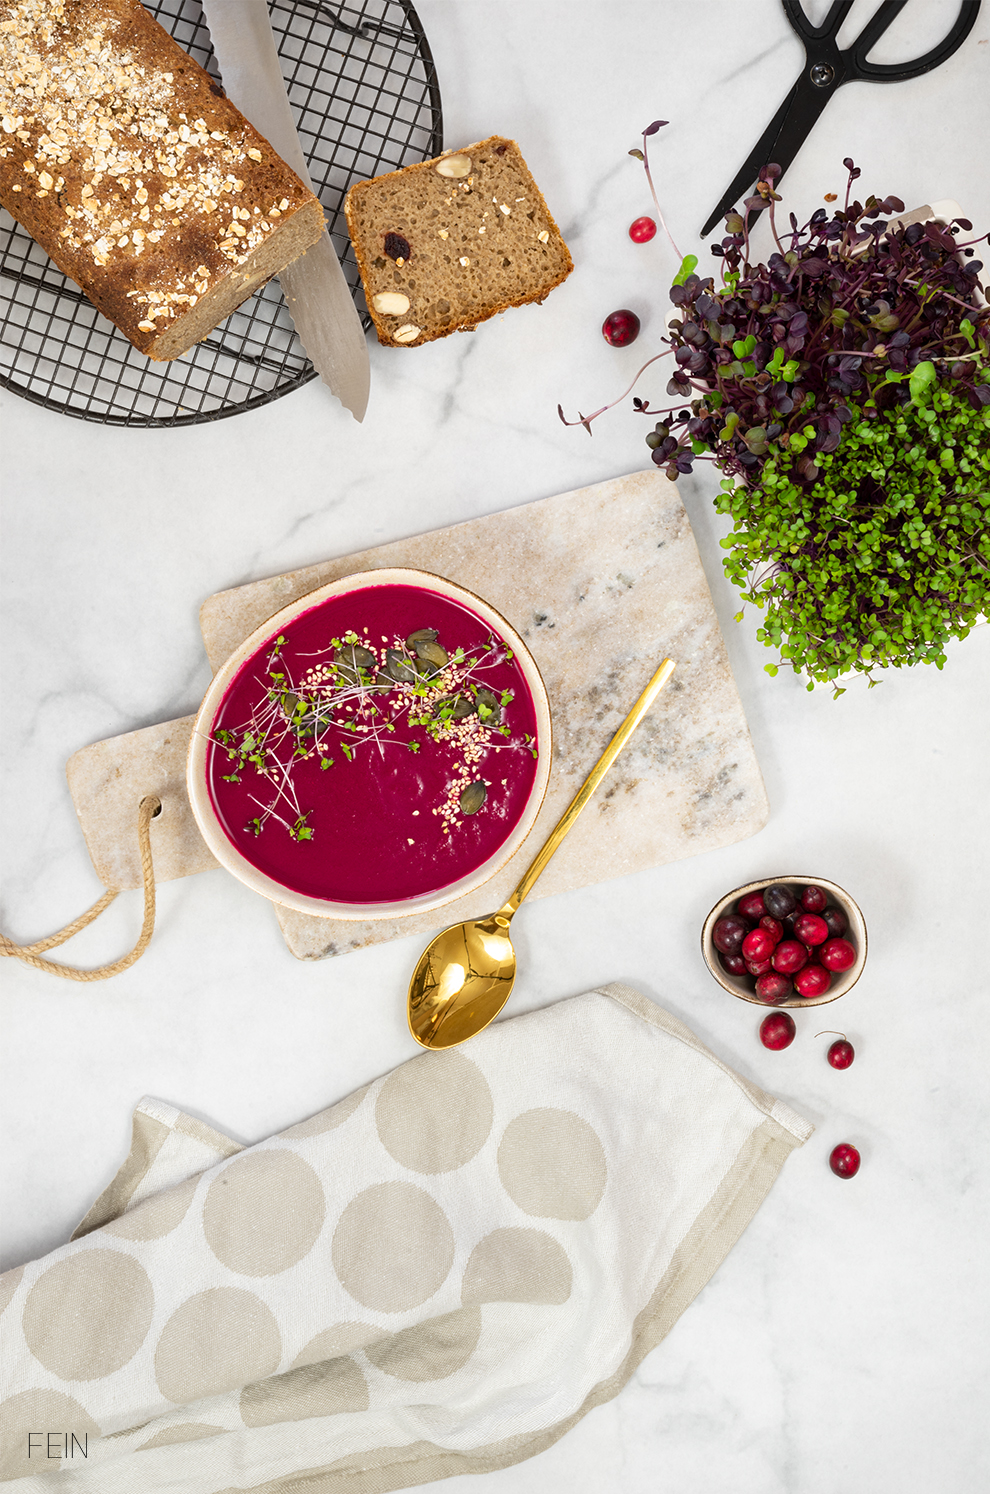 Winteressen Rote Beete Suppe